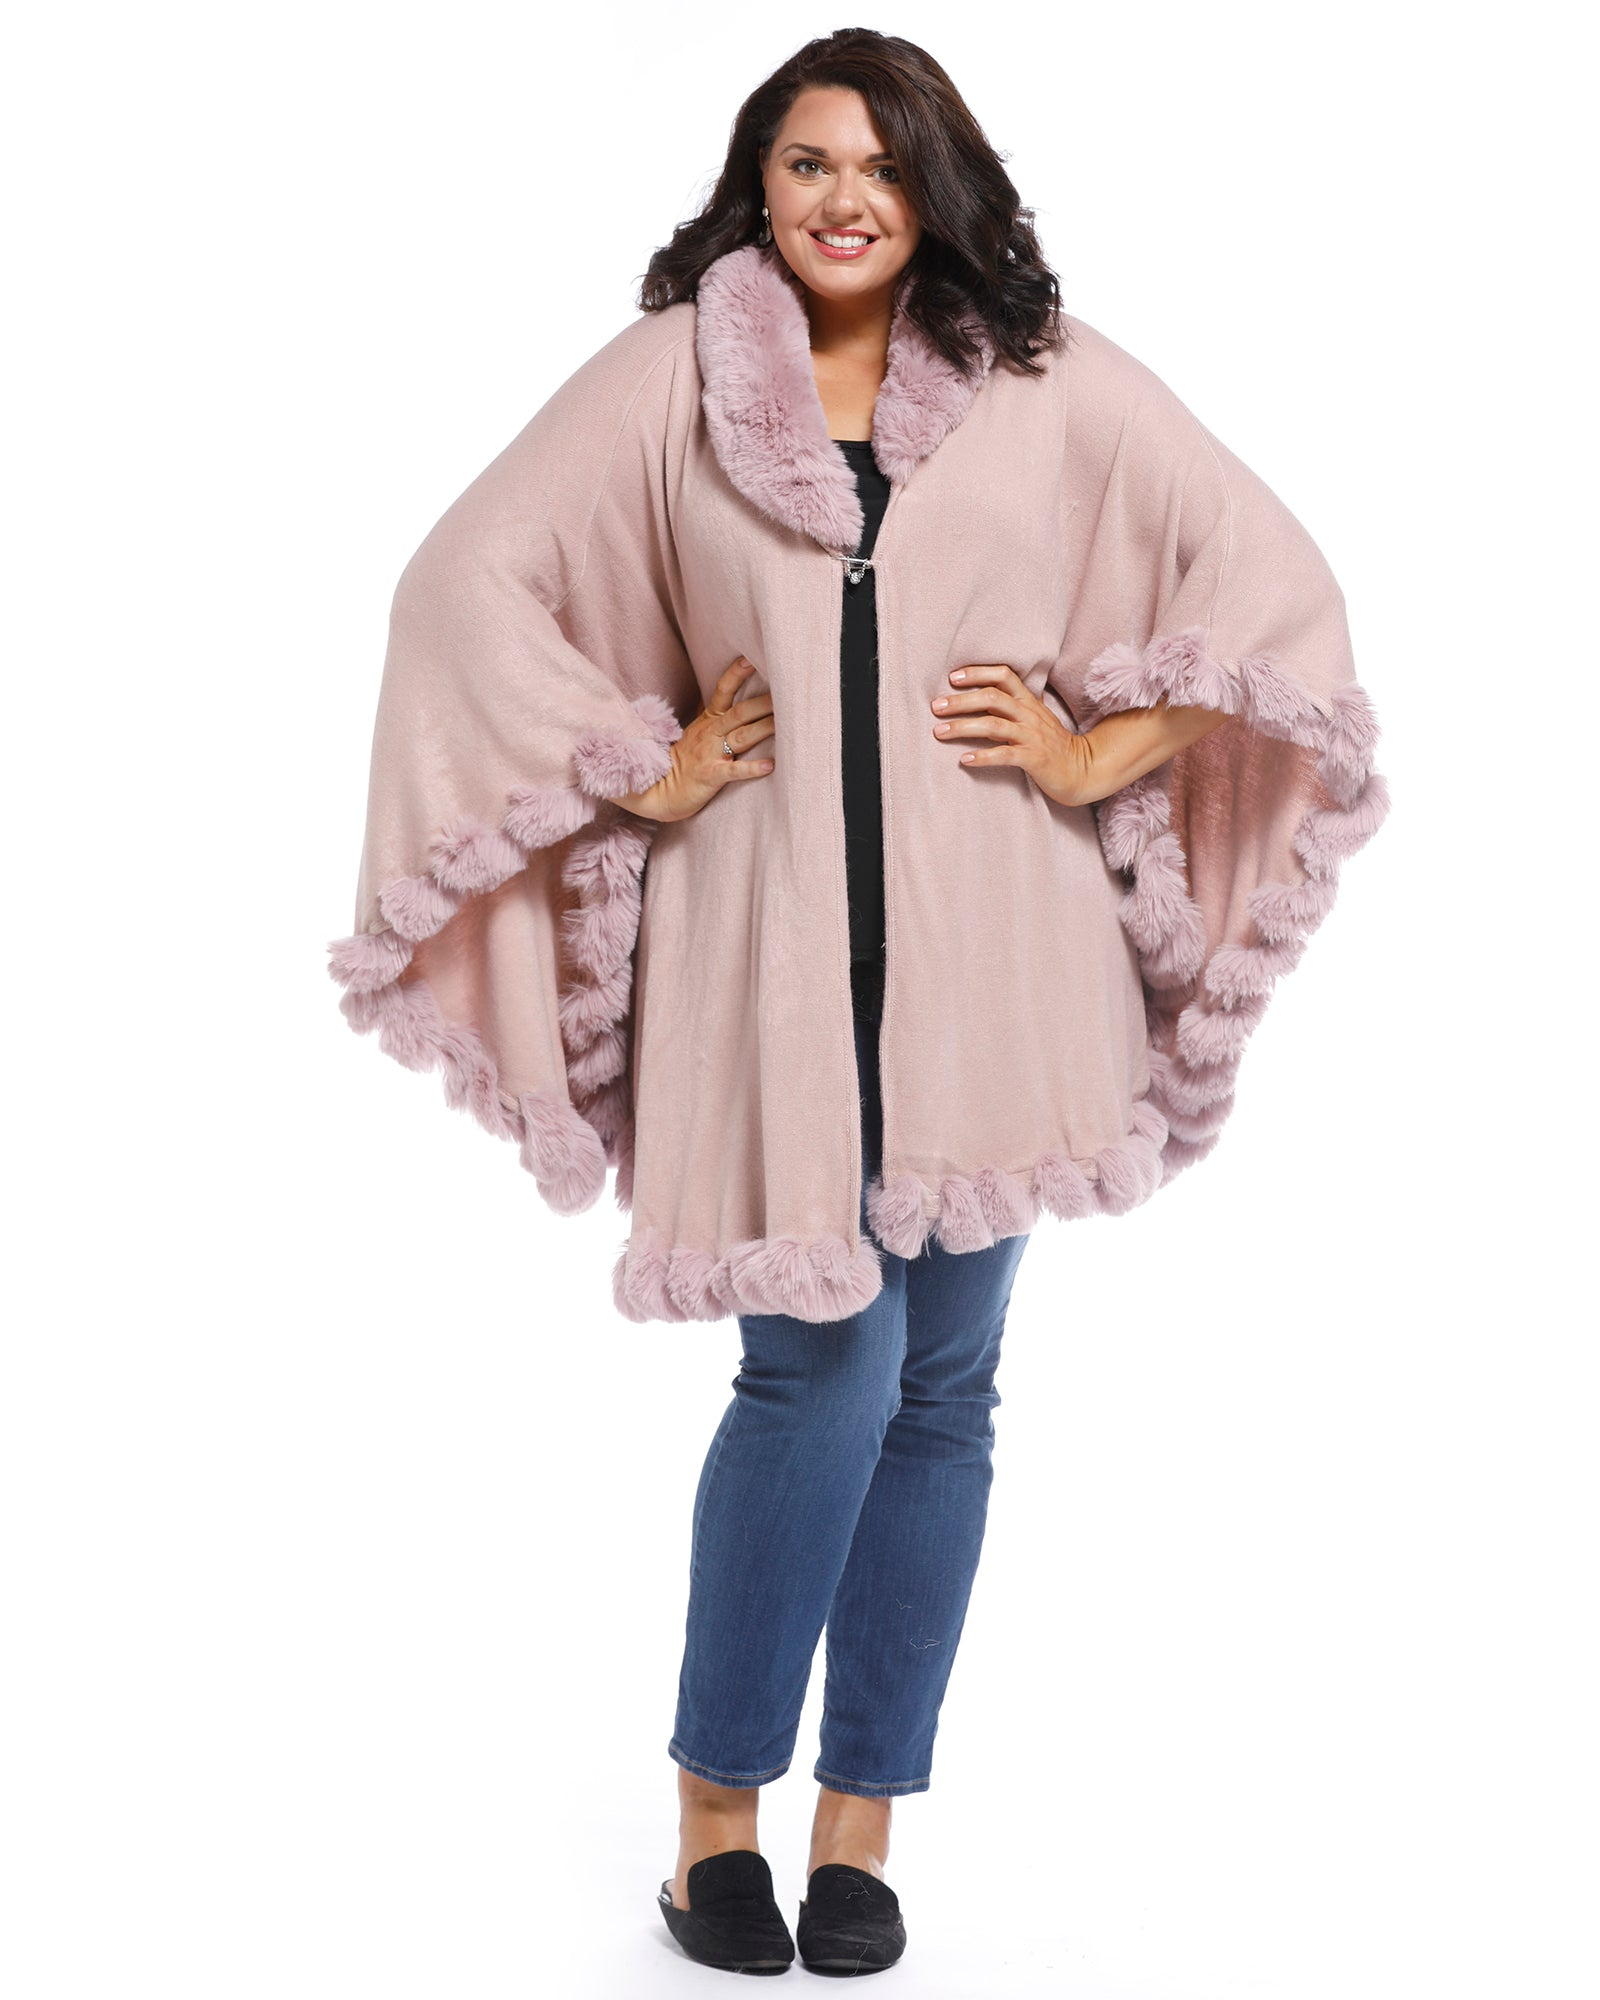 Luxurious Super Soft Knit Cover Up with Fur Trim - Pink